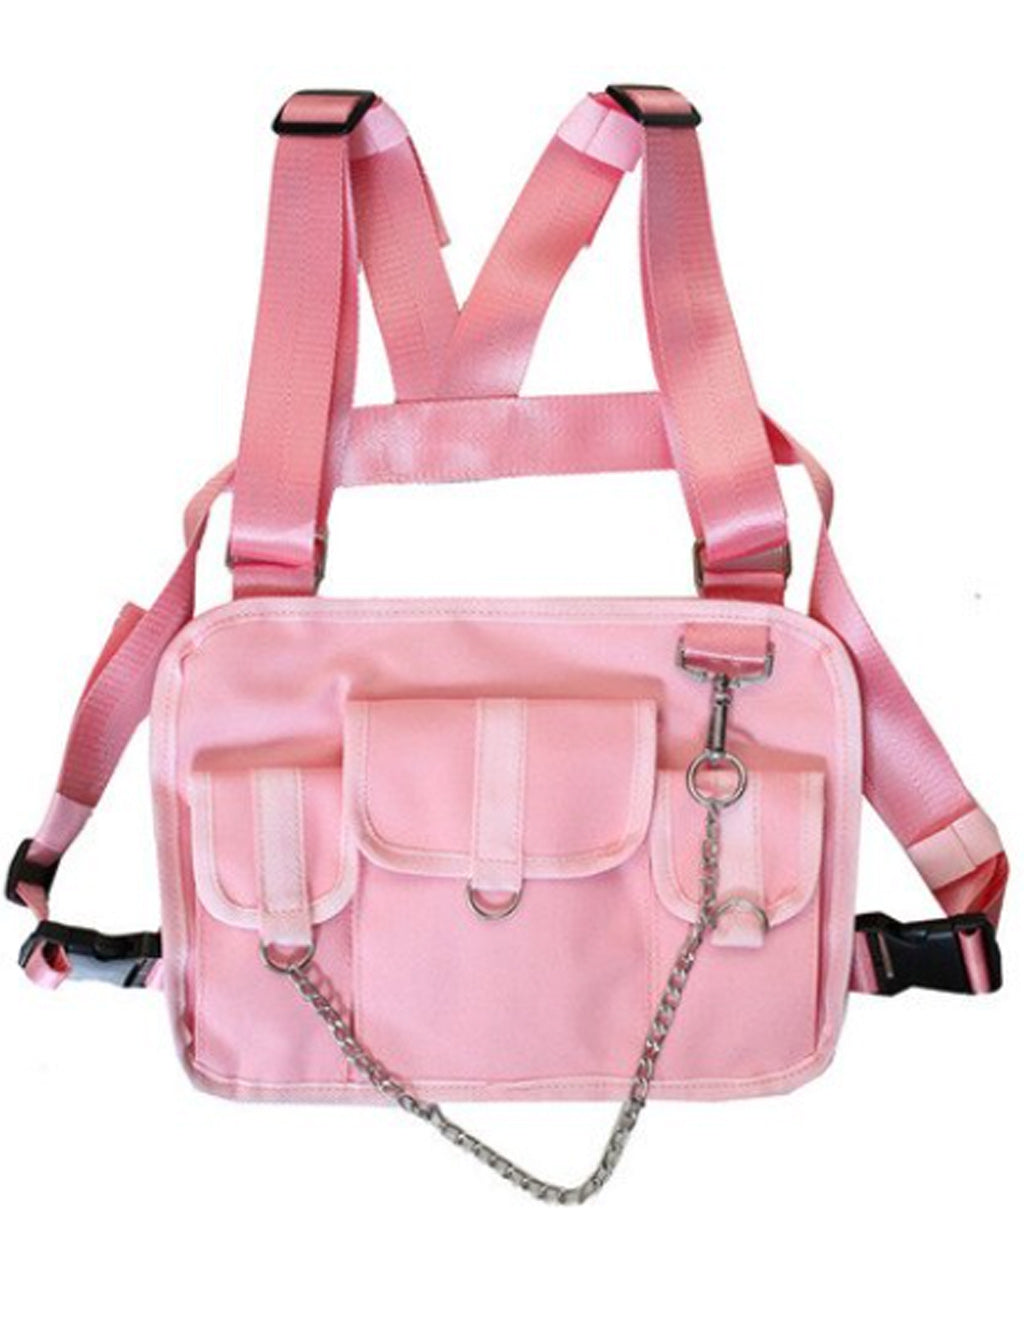 GLADIATOR CHEST RIG - PINK